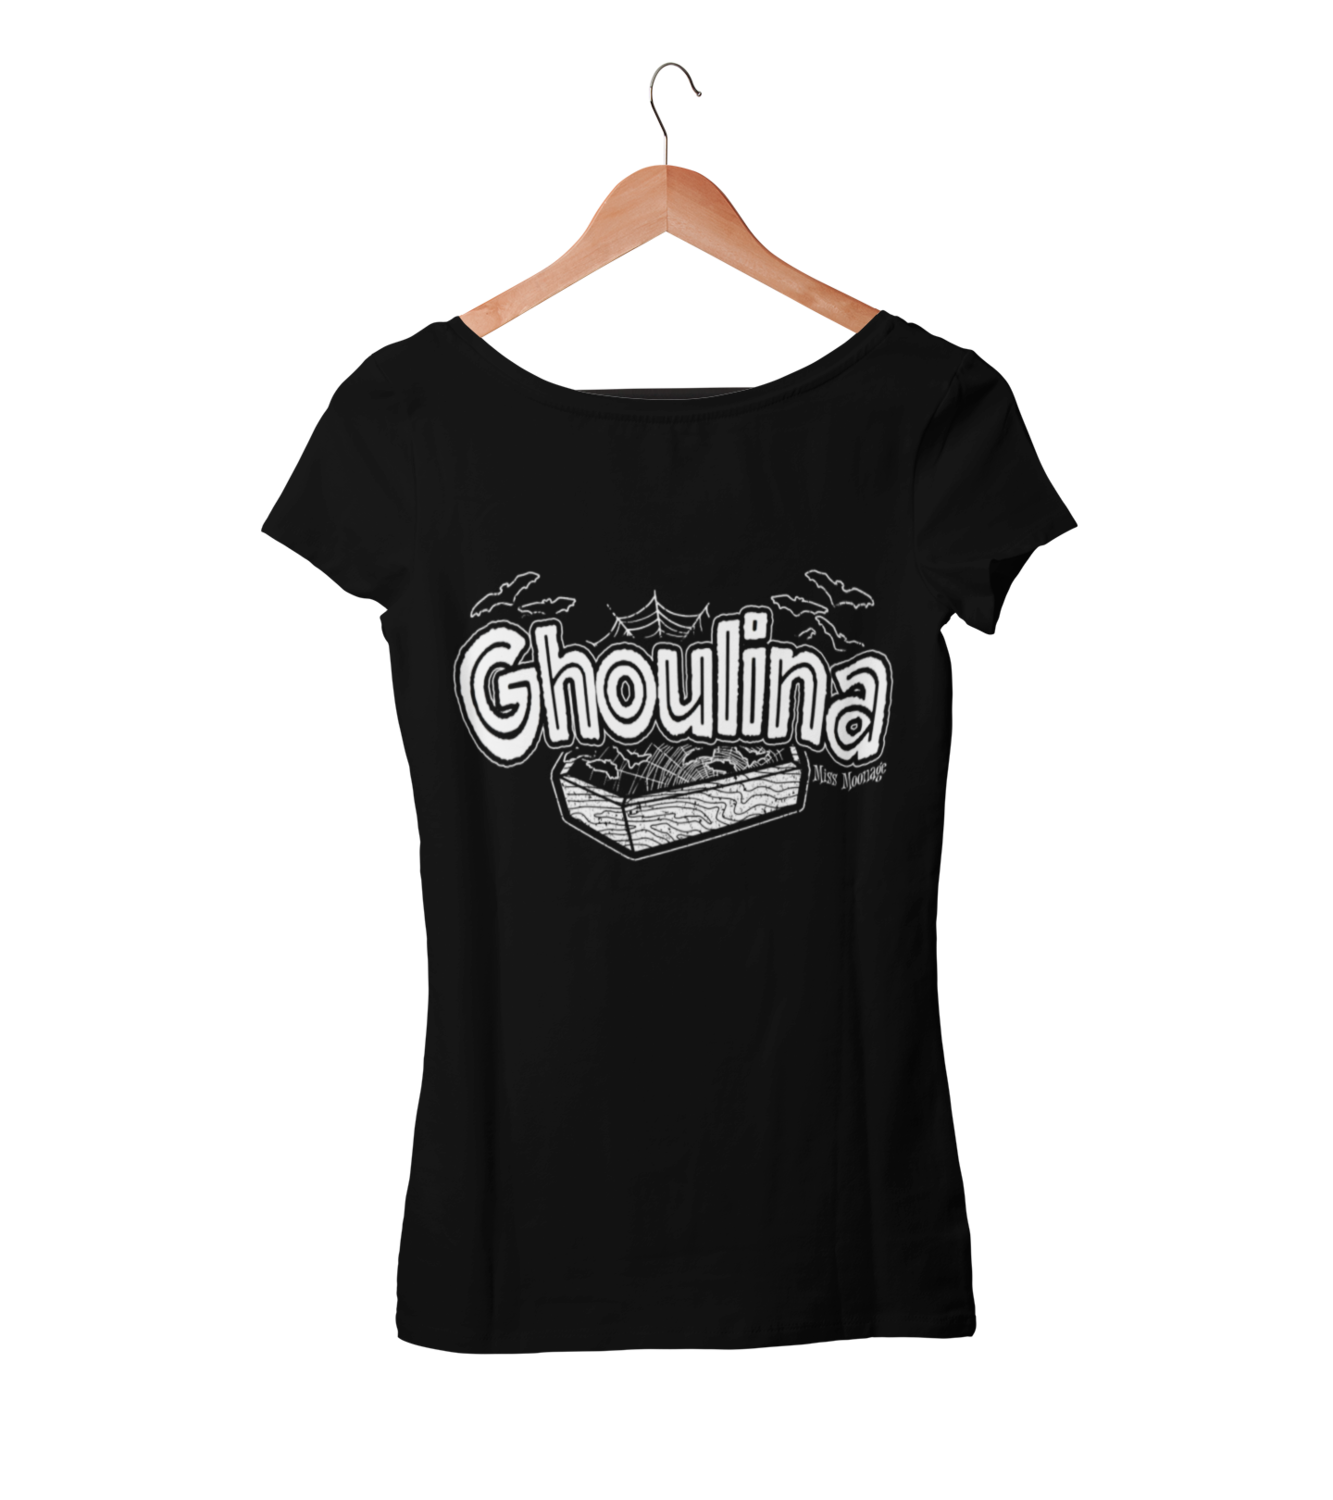 GHOULINA by MISS MOONAGE tshirt for WOMEN